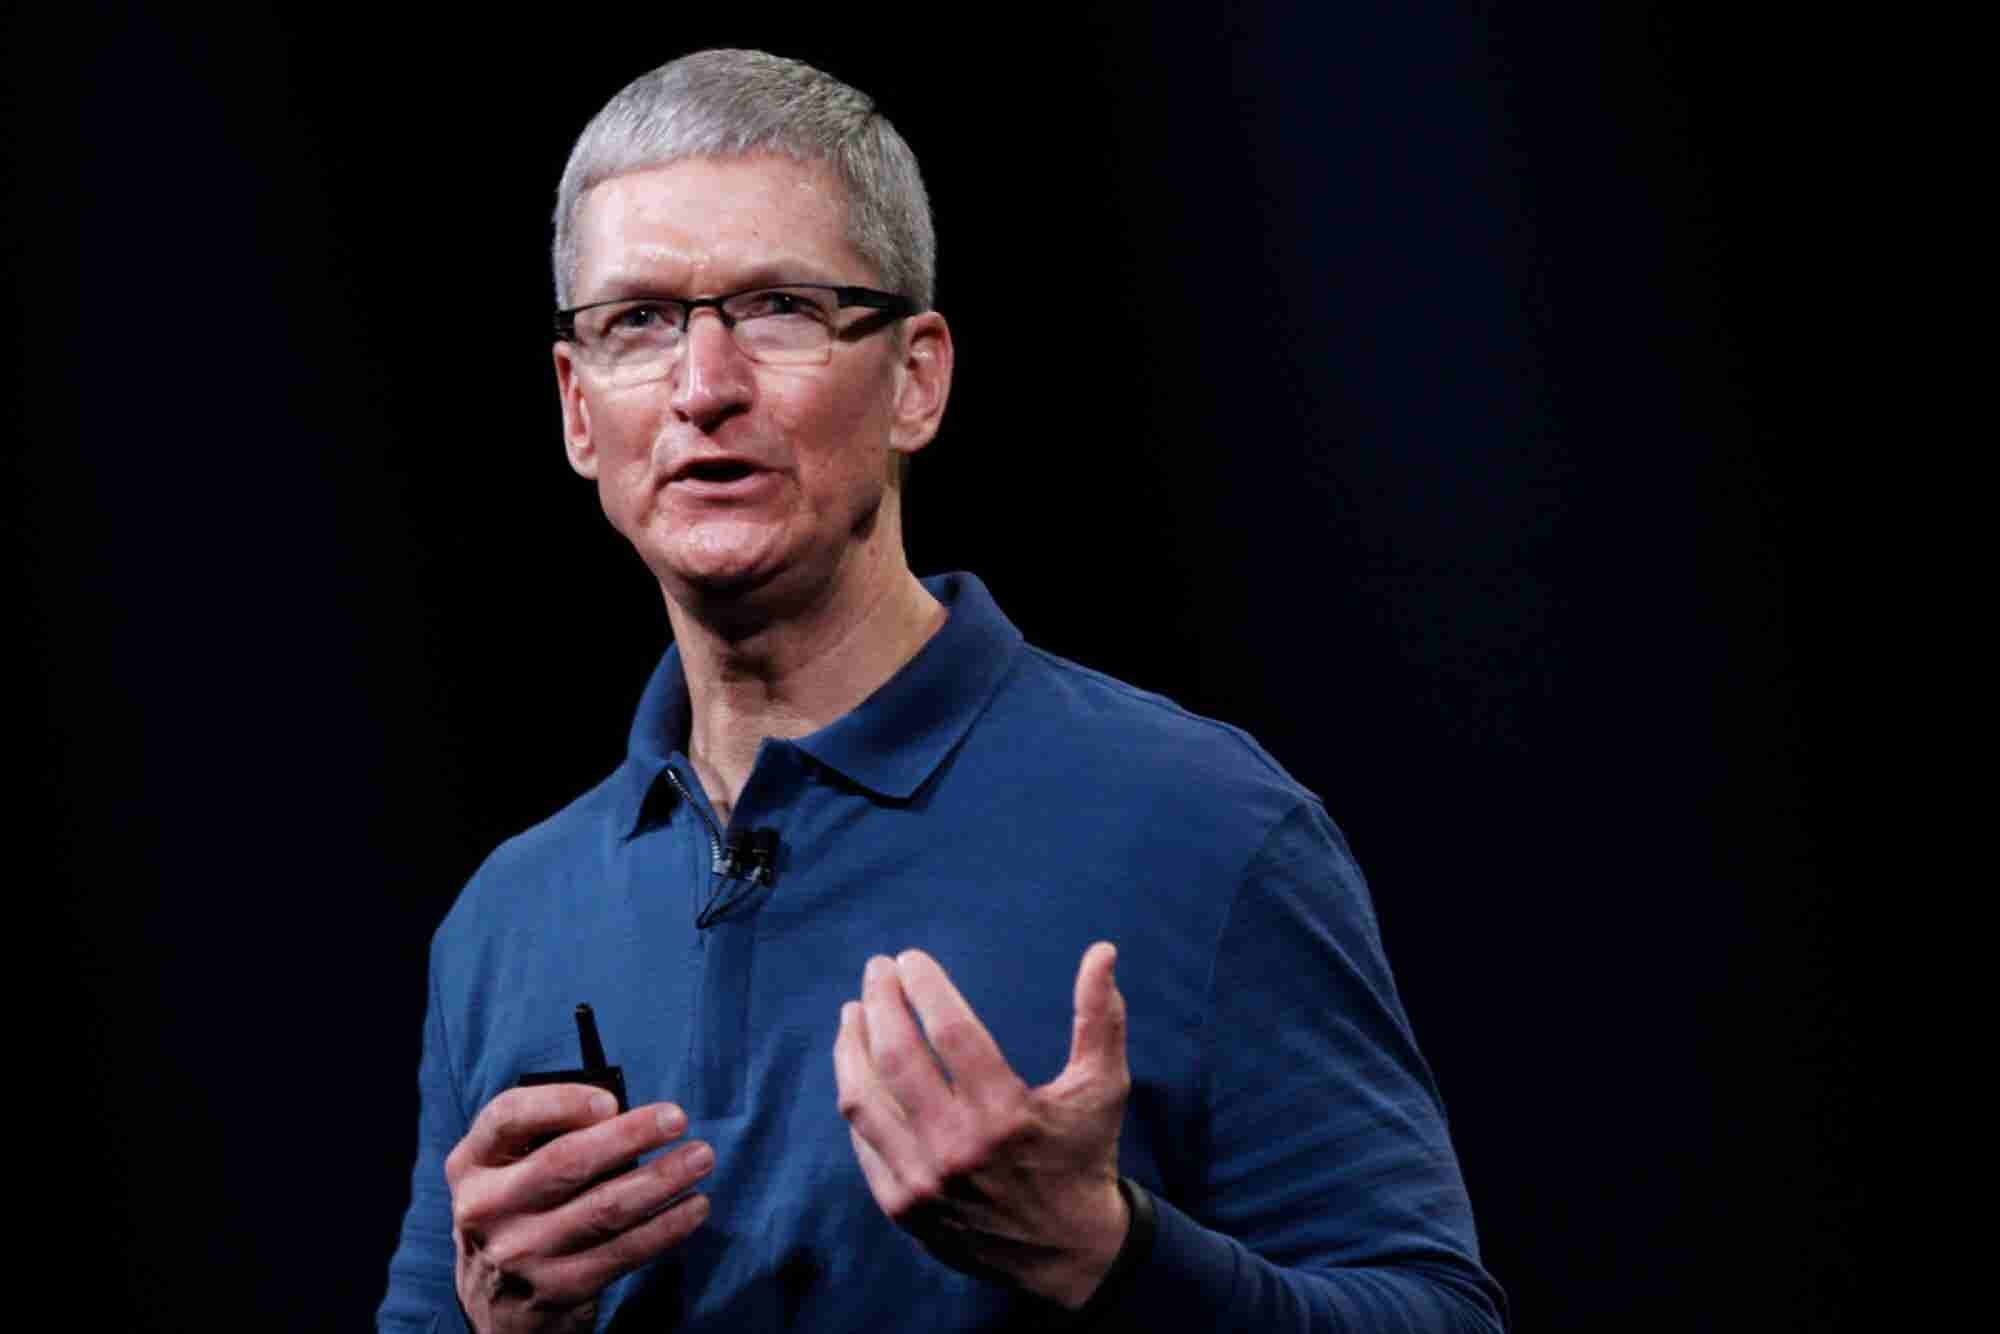 Is India The Next China for Apple? Tim Cook Announces New Accelerator in Bengaluru